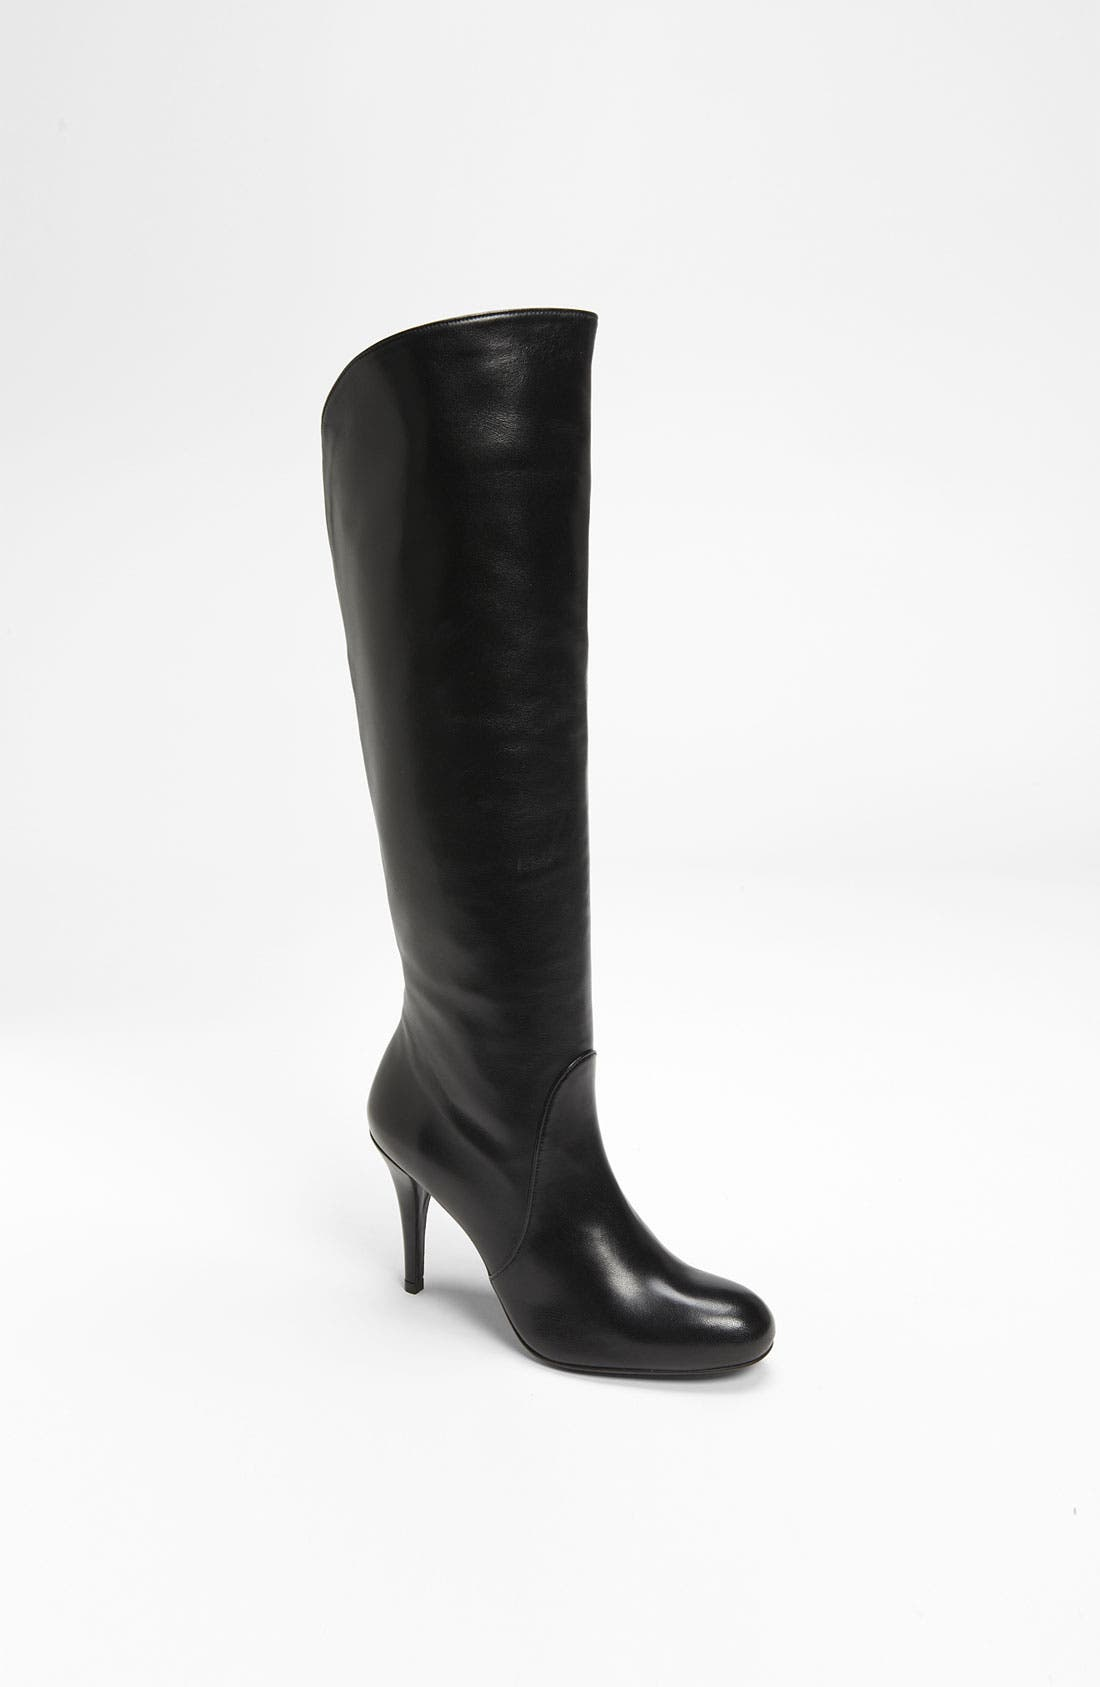 Alternate Image 1 Selected - Stuart Weitzman 'Park' Boot